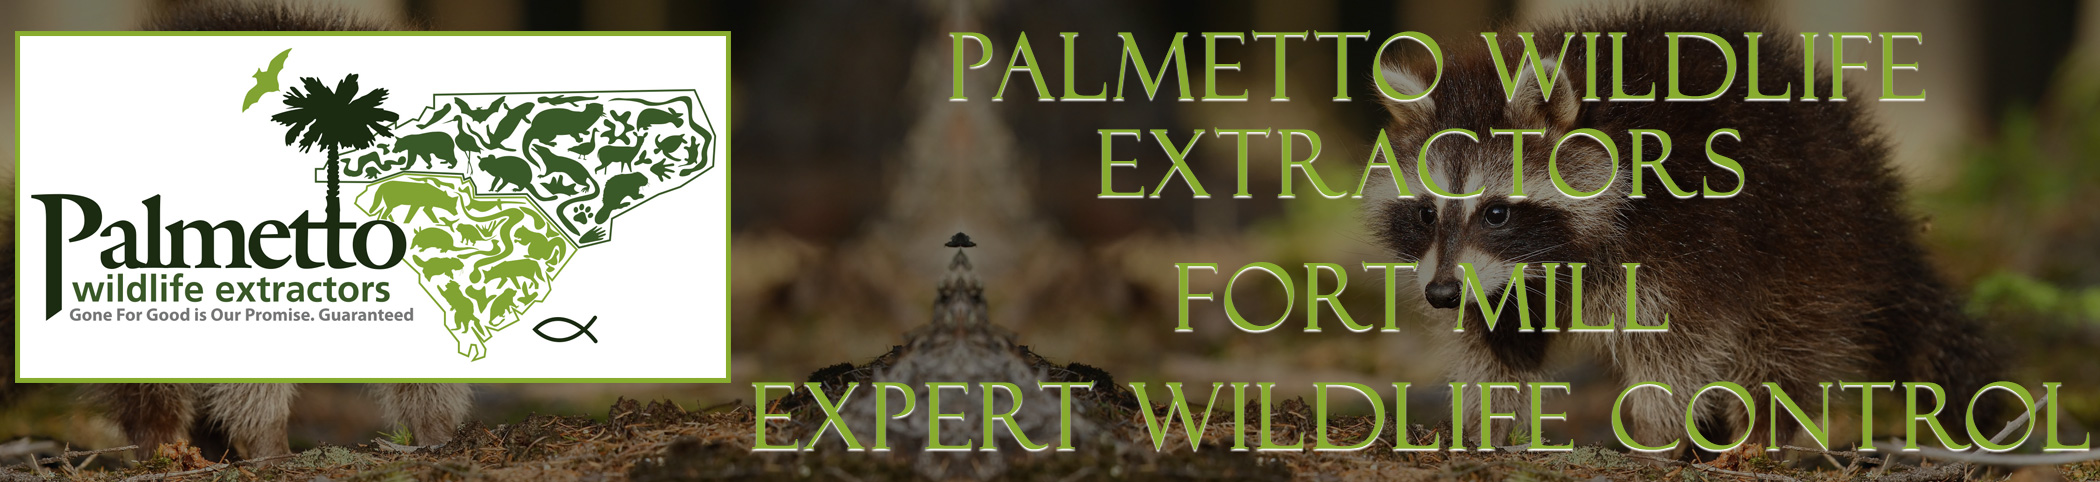 Palmetto Wildlife Extractors Fort Mill south carolina header image